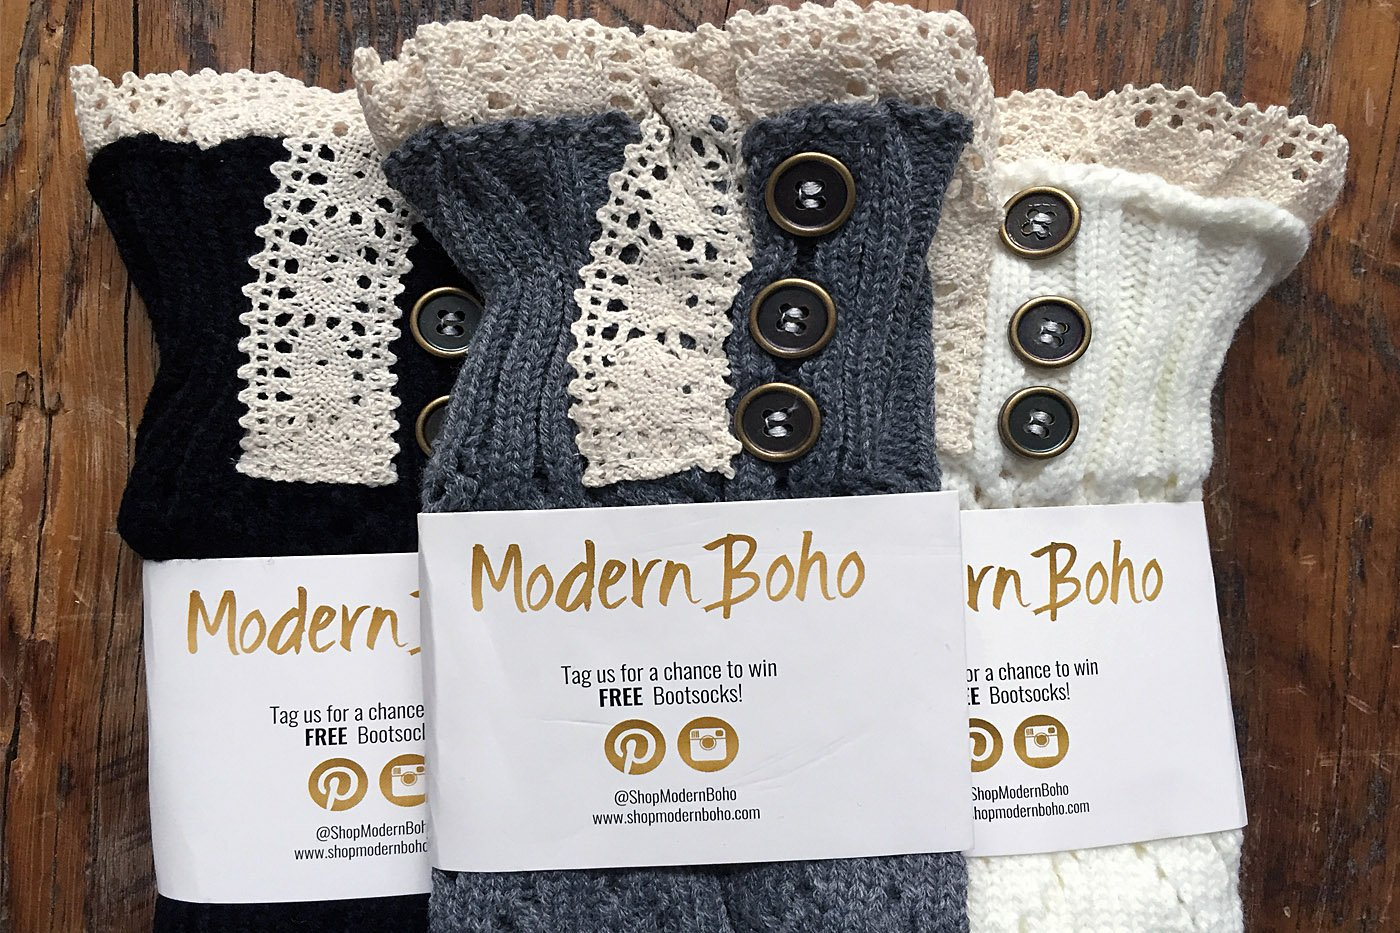 Boot Cuffs Vintage 3 Button Style Women's Boutique Socks Brand by Modern Boho Ivory by Boutique Socks (Image #5)